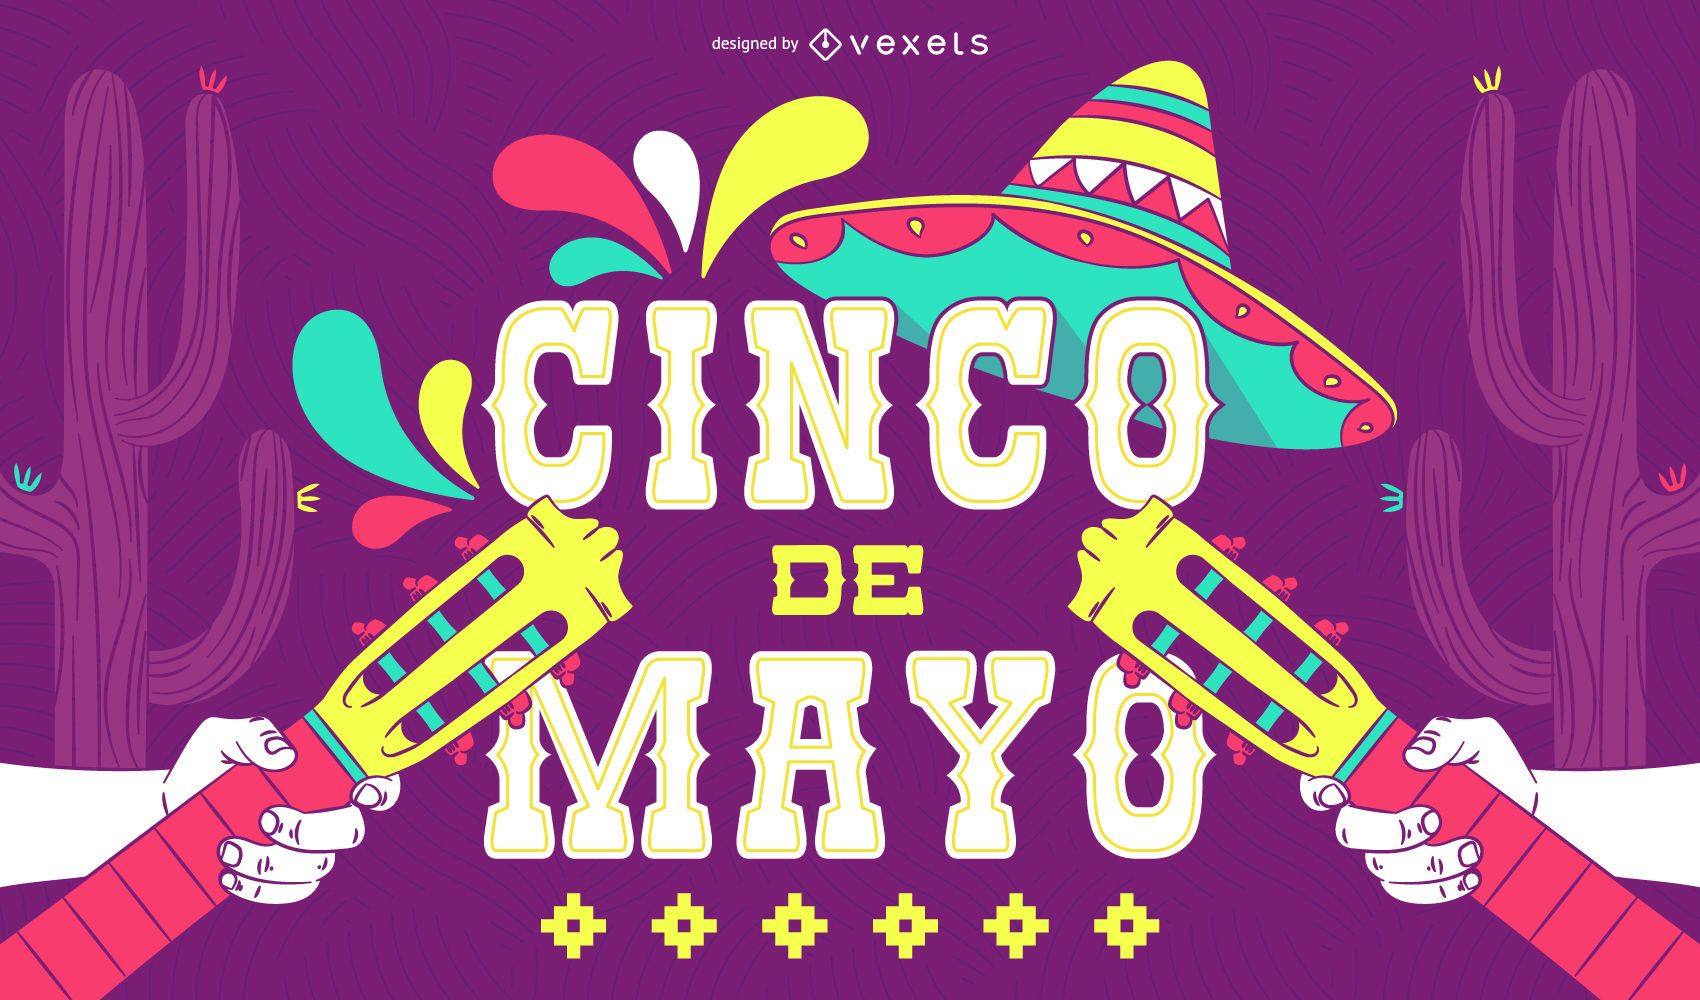 https://images.vexels.com/media/users/3/150327/raw/a2ffd9ef3bc60b4d157eb49db47f2449-cinco-de-mayo-illustrated-poster.jpg